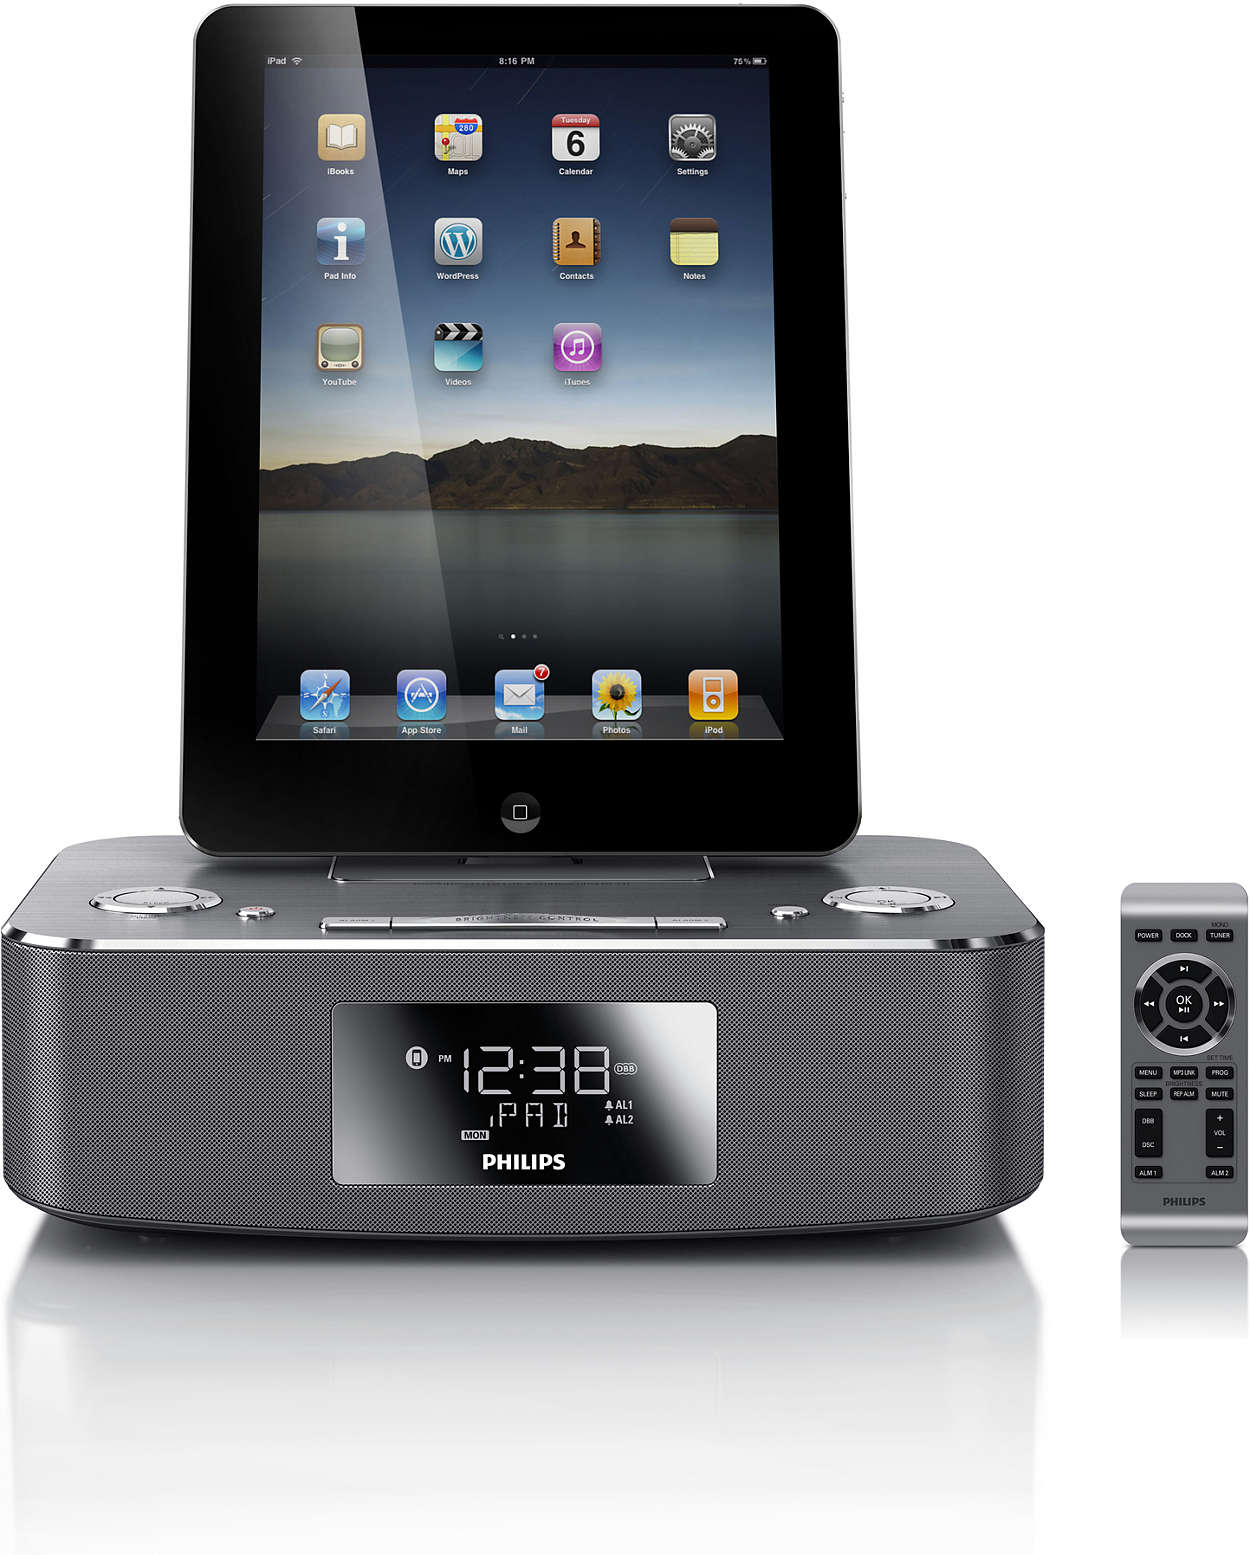 docking station for ipod iphone ipad dc291 12 philips. Black Bedroom Furniture Sets. Home Design Ideas